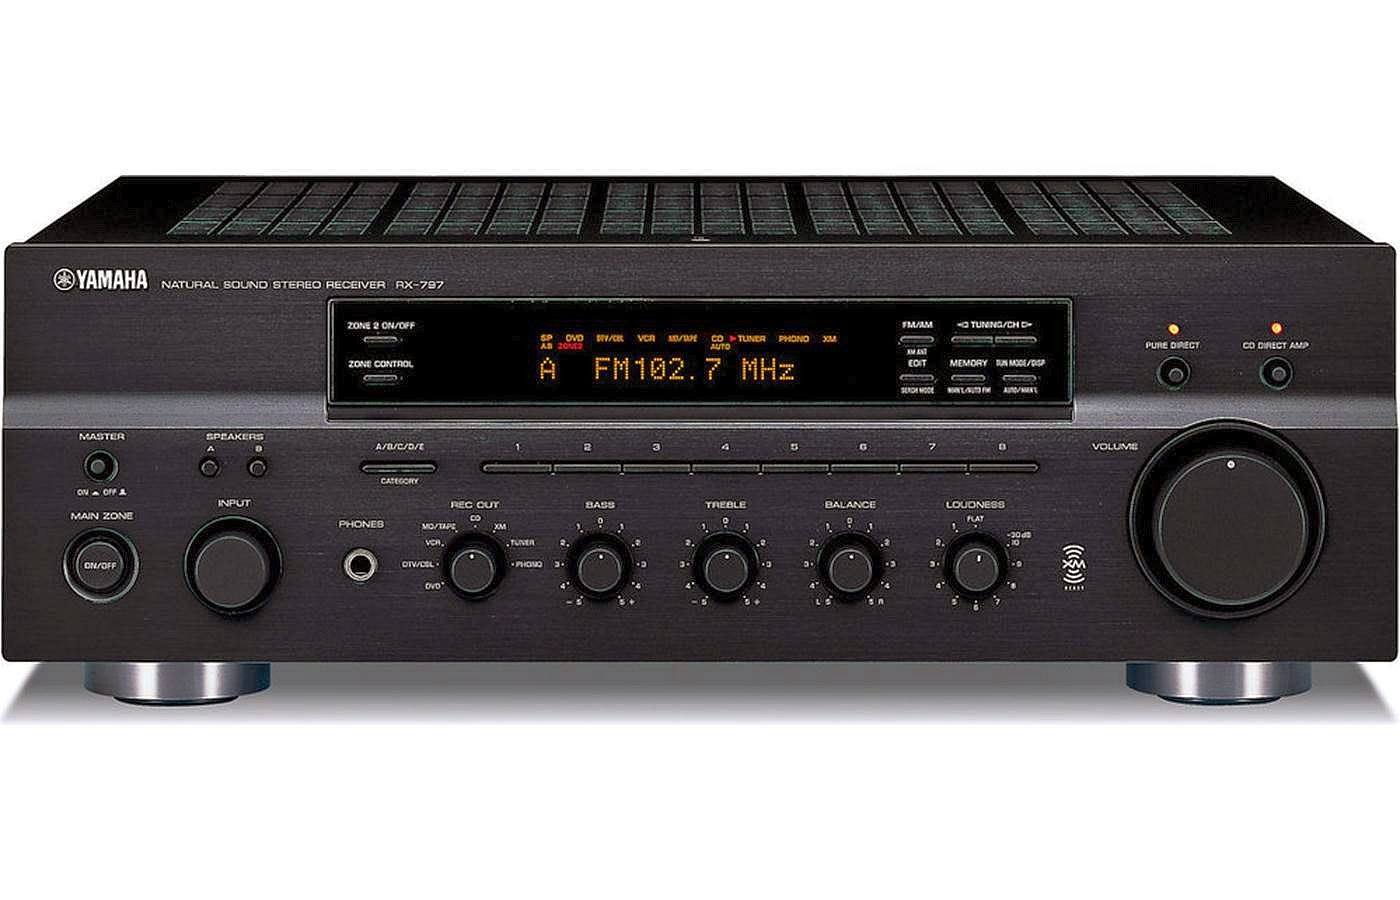 yamaha rx 797 stereo receiver audiobaza. Black Bedroom Furniture Sets. Home Design Ideas